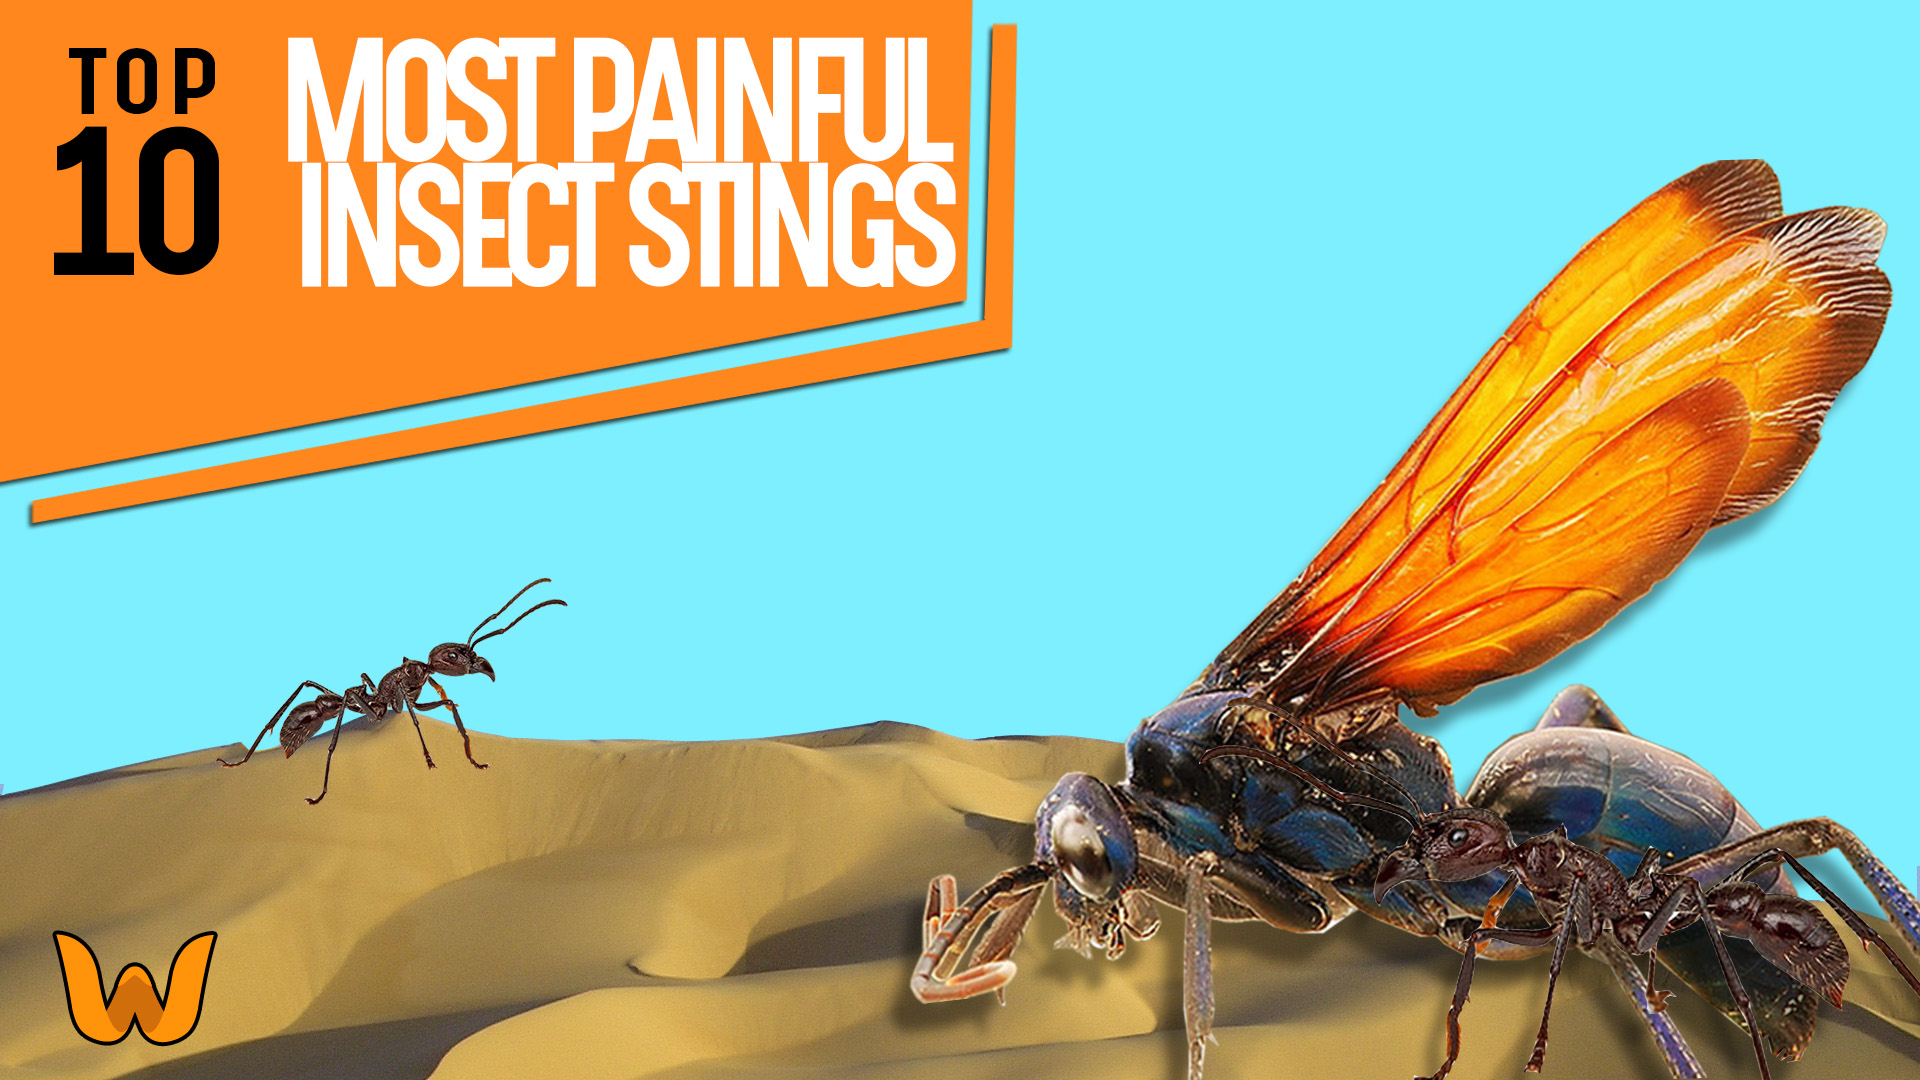 most painful insect stings image